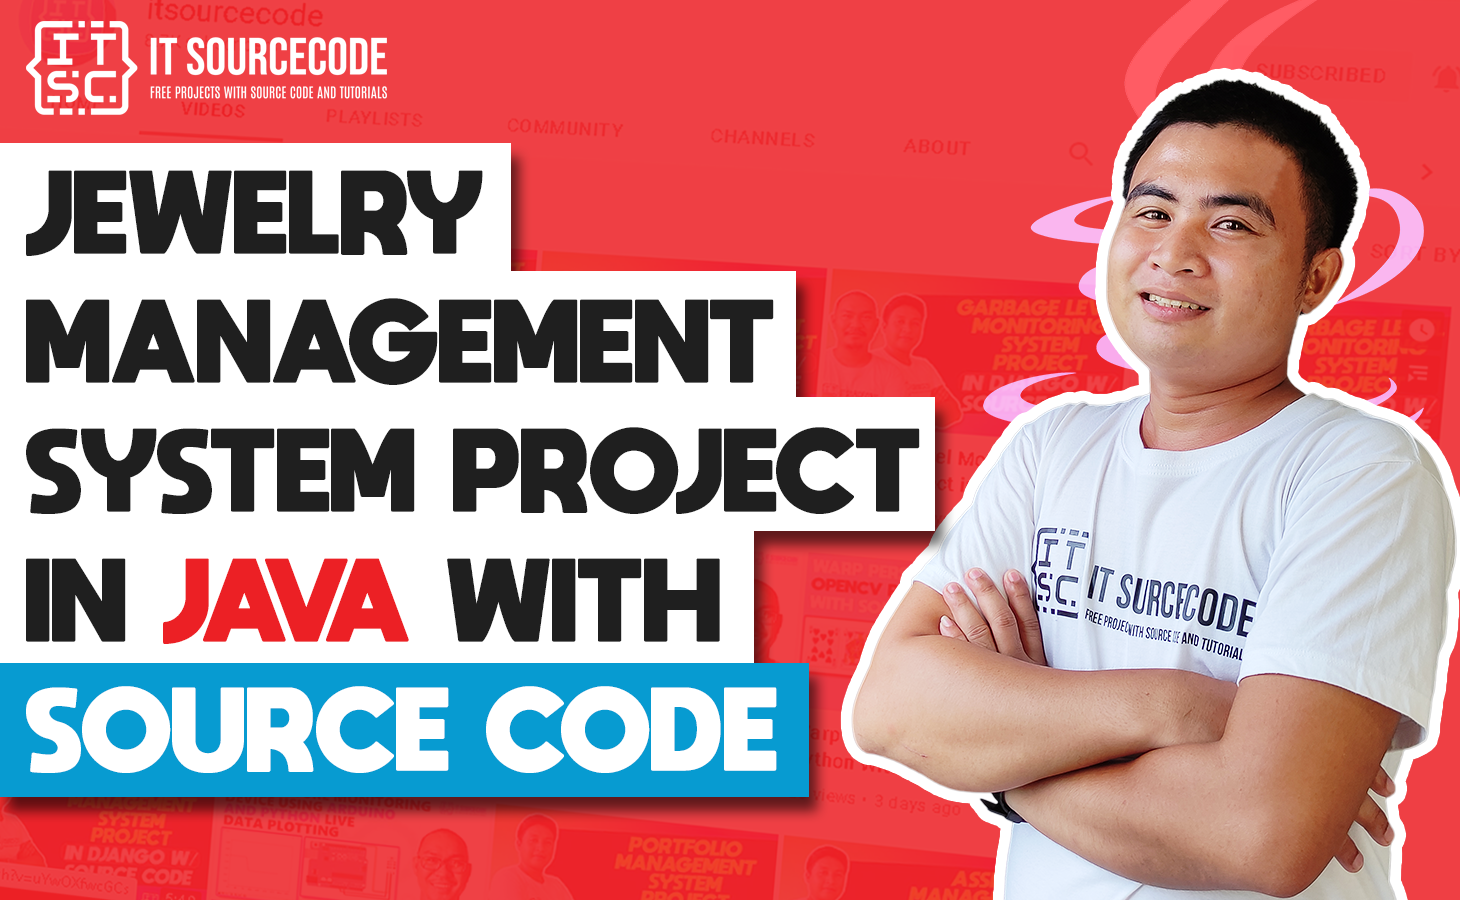 Jewelry Management System Project In Java With Source Code